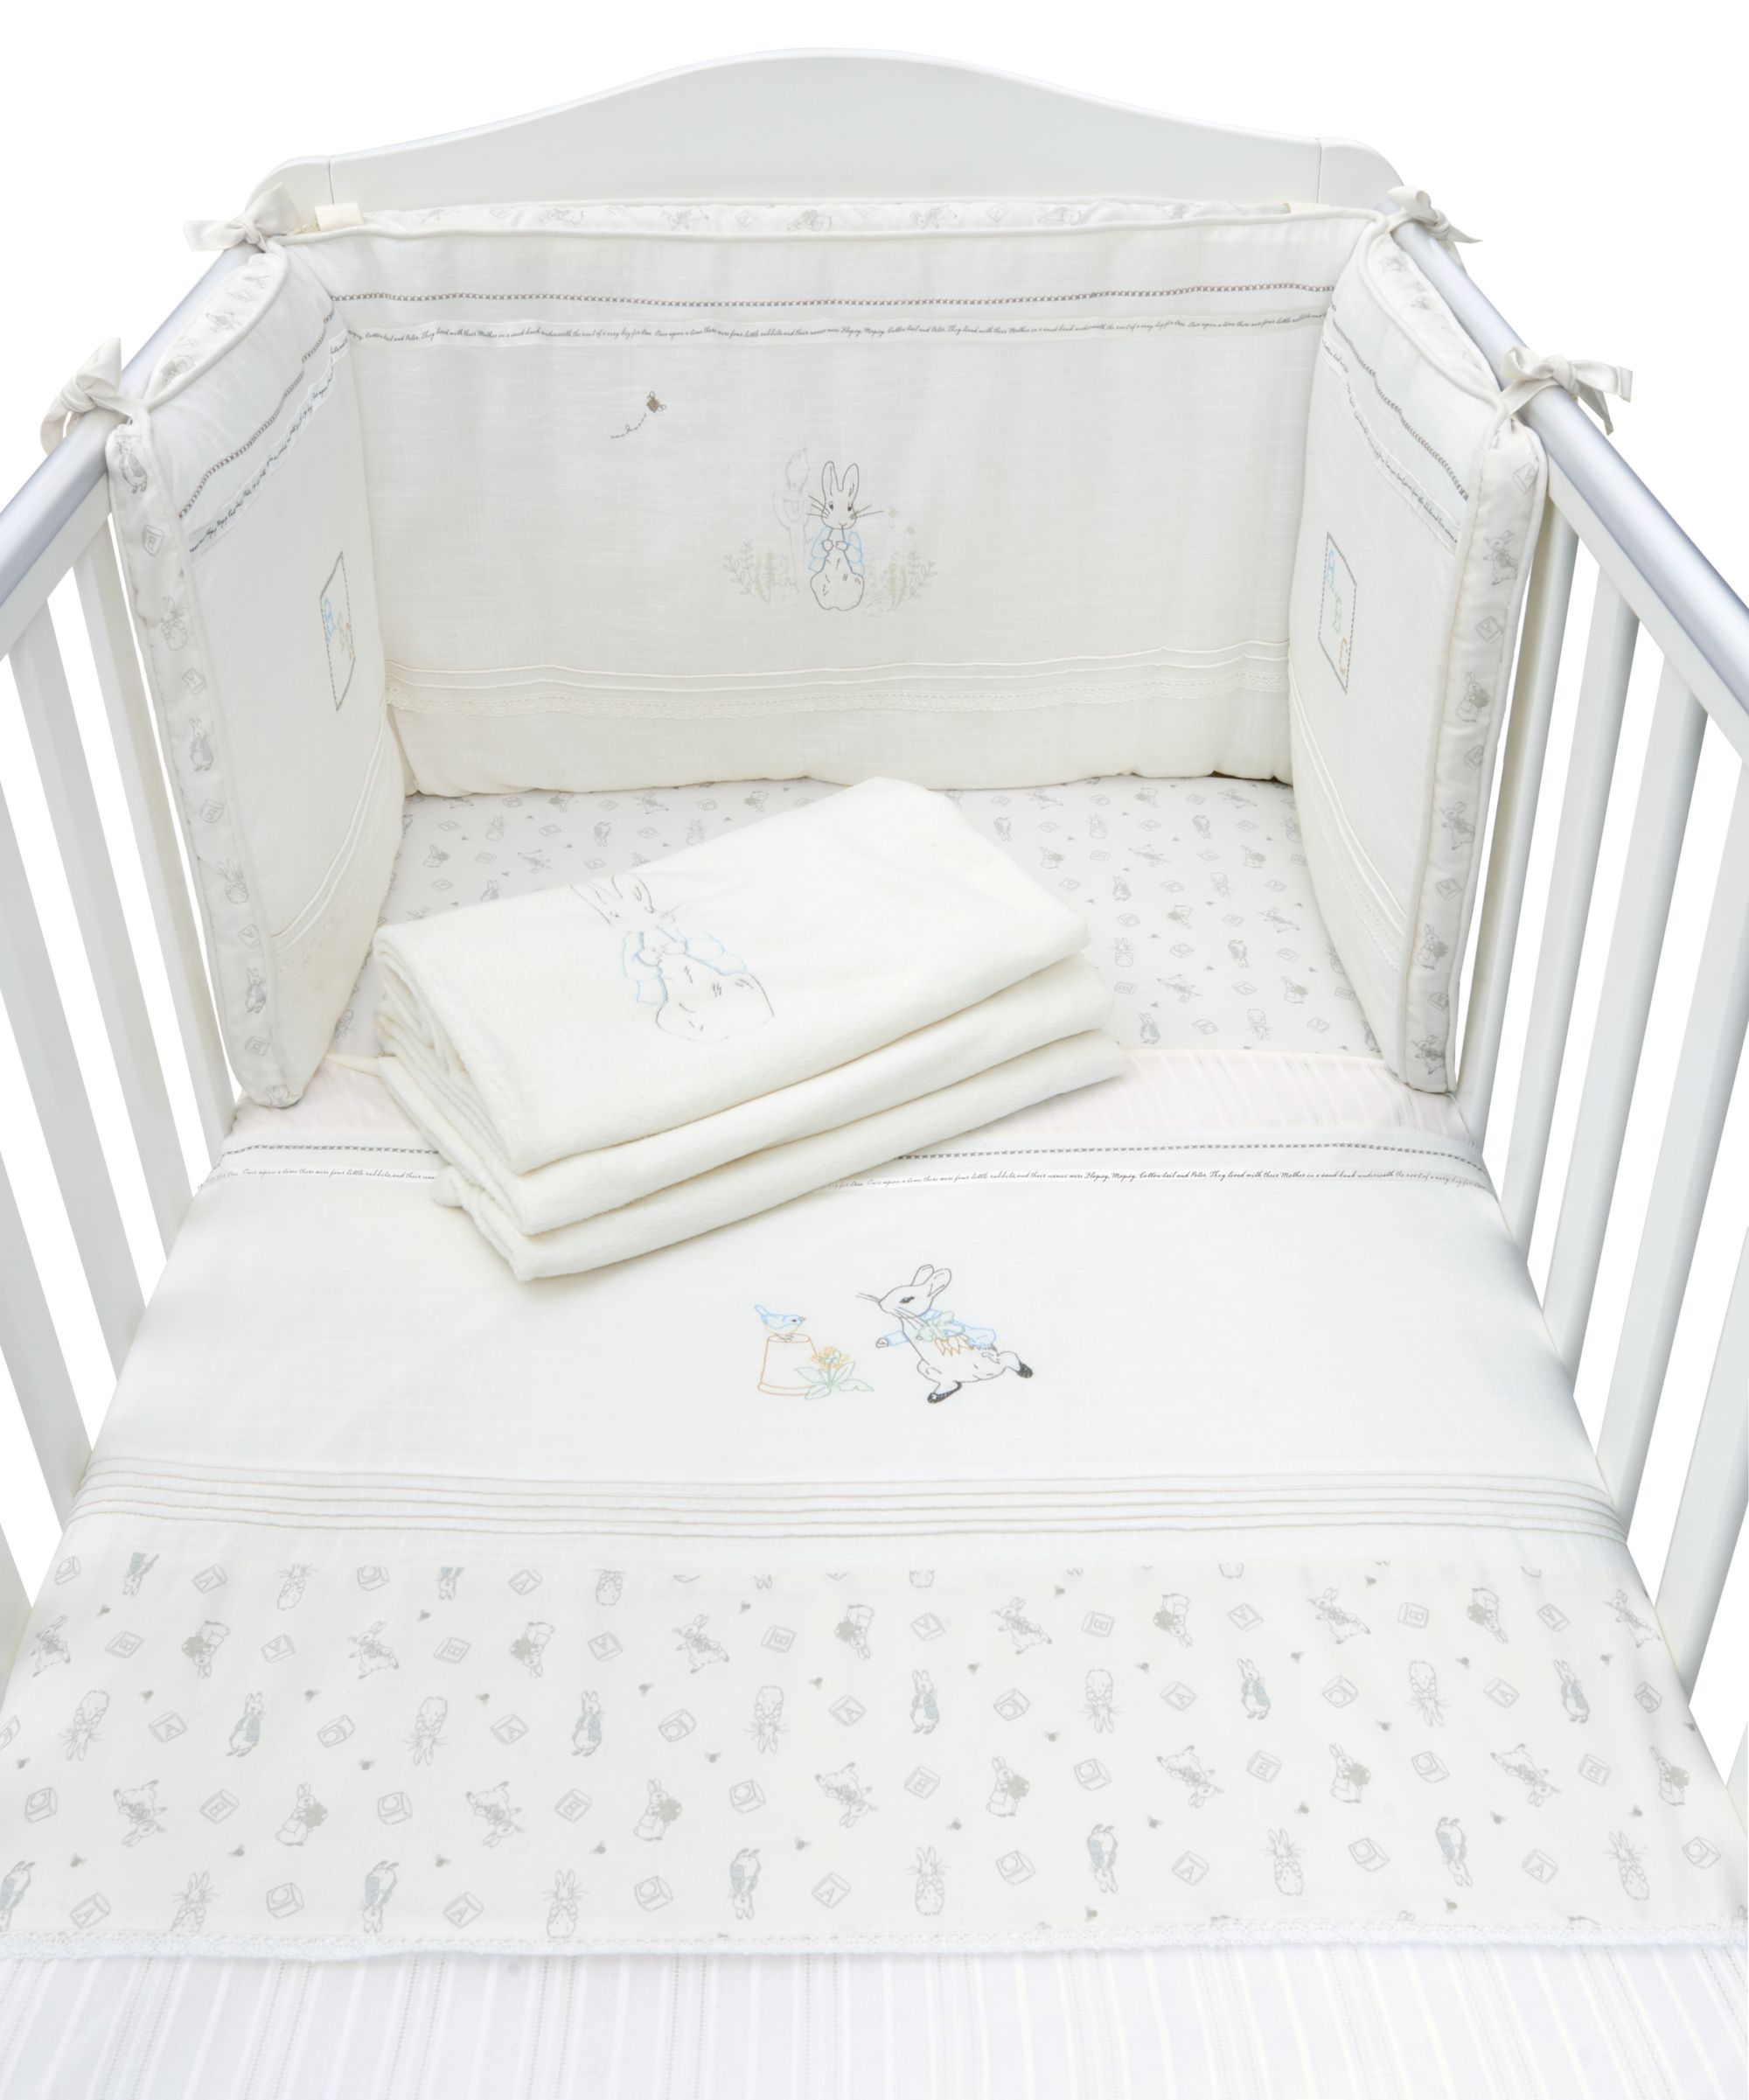 Peter Rabbit Bed In A Bag Exclusively From Mothercare Uk